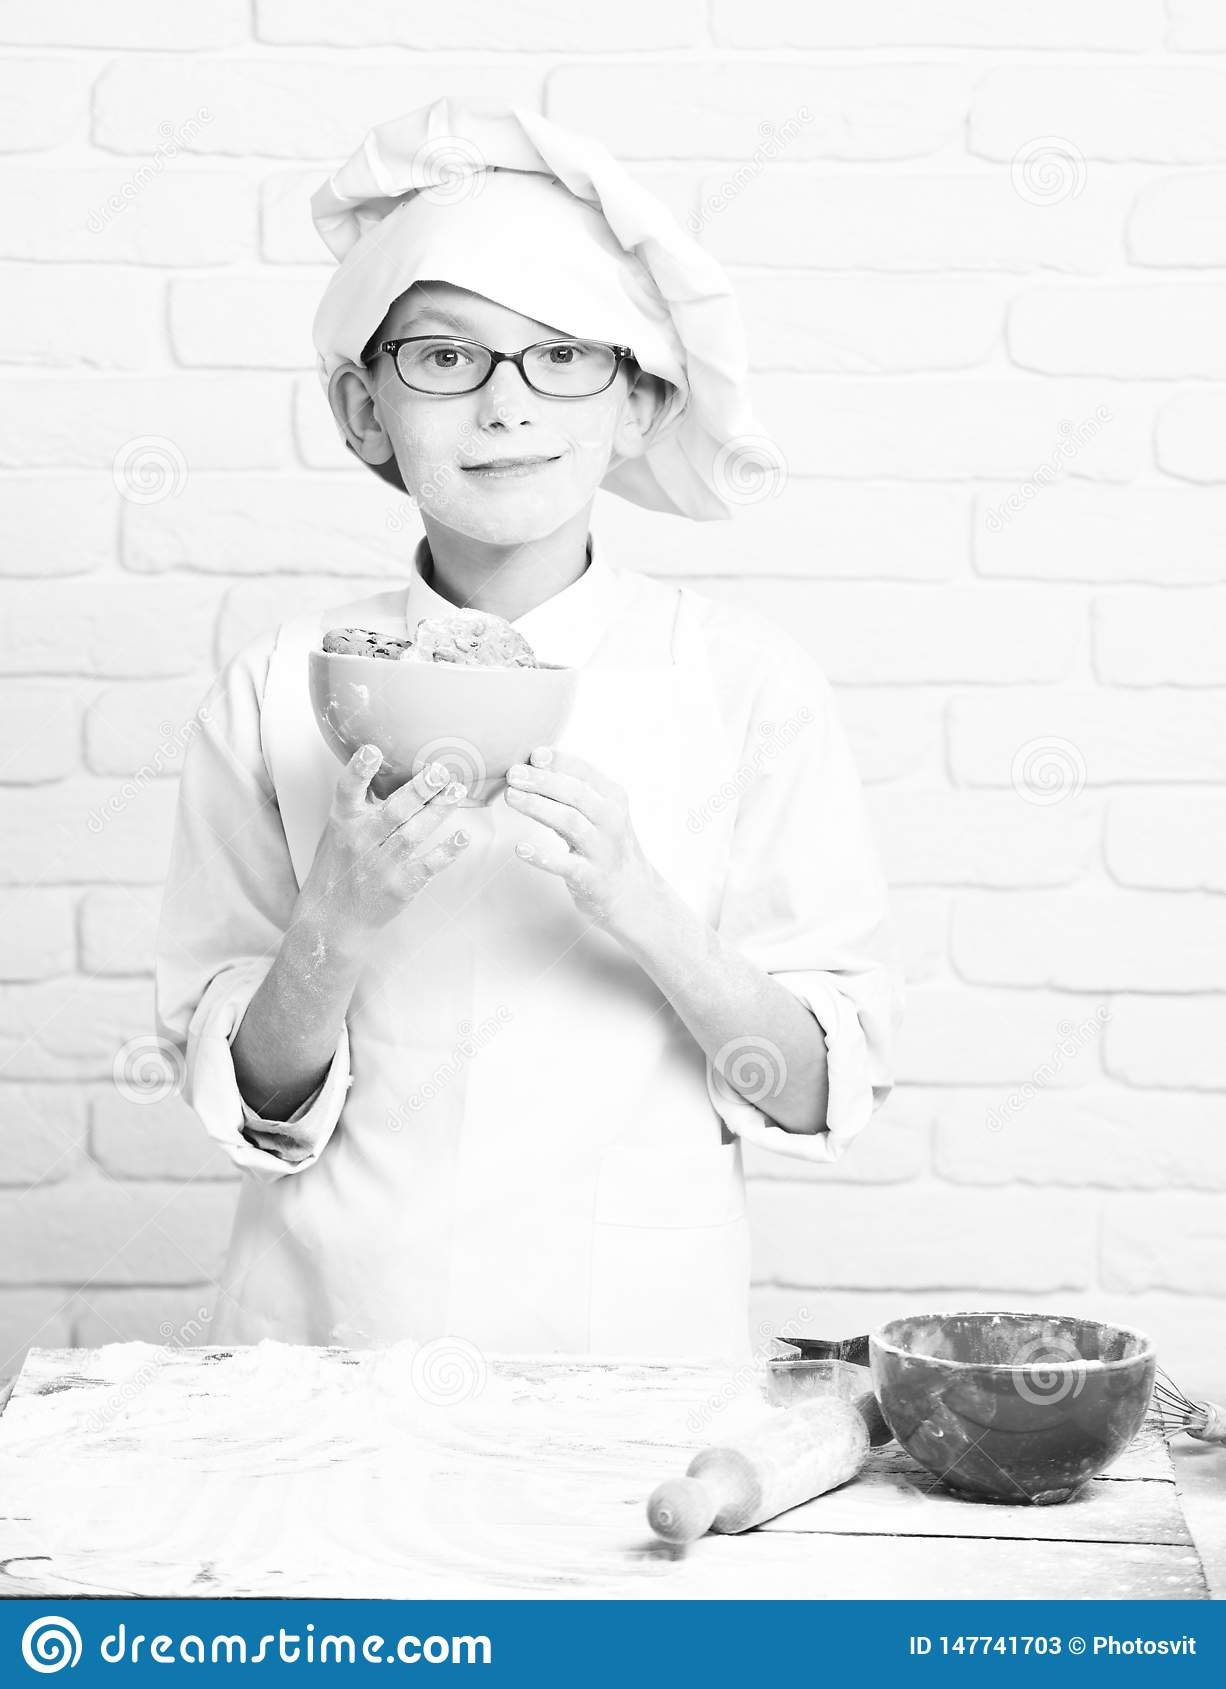 Young boy cute cook chef in white uniform and hat on stained face flour with glasses standing near table with rolling